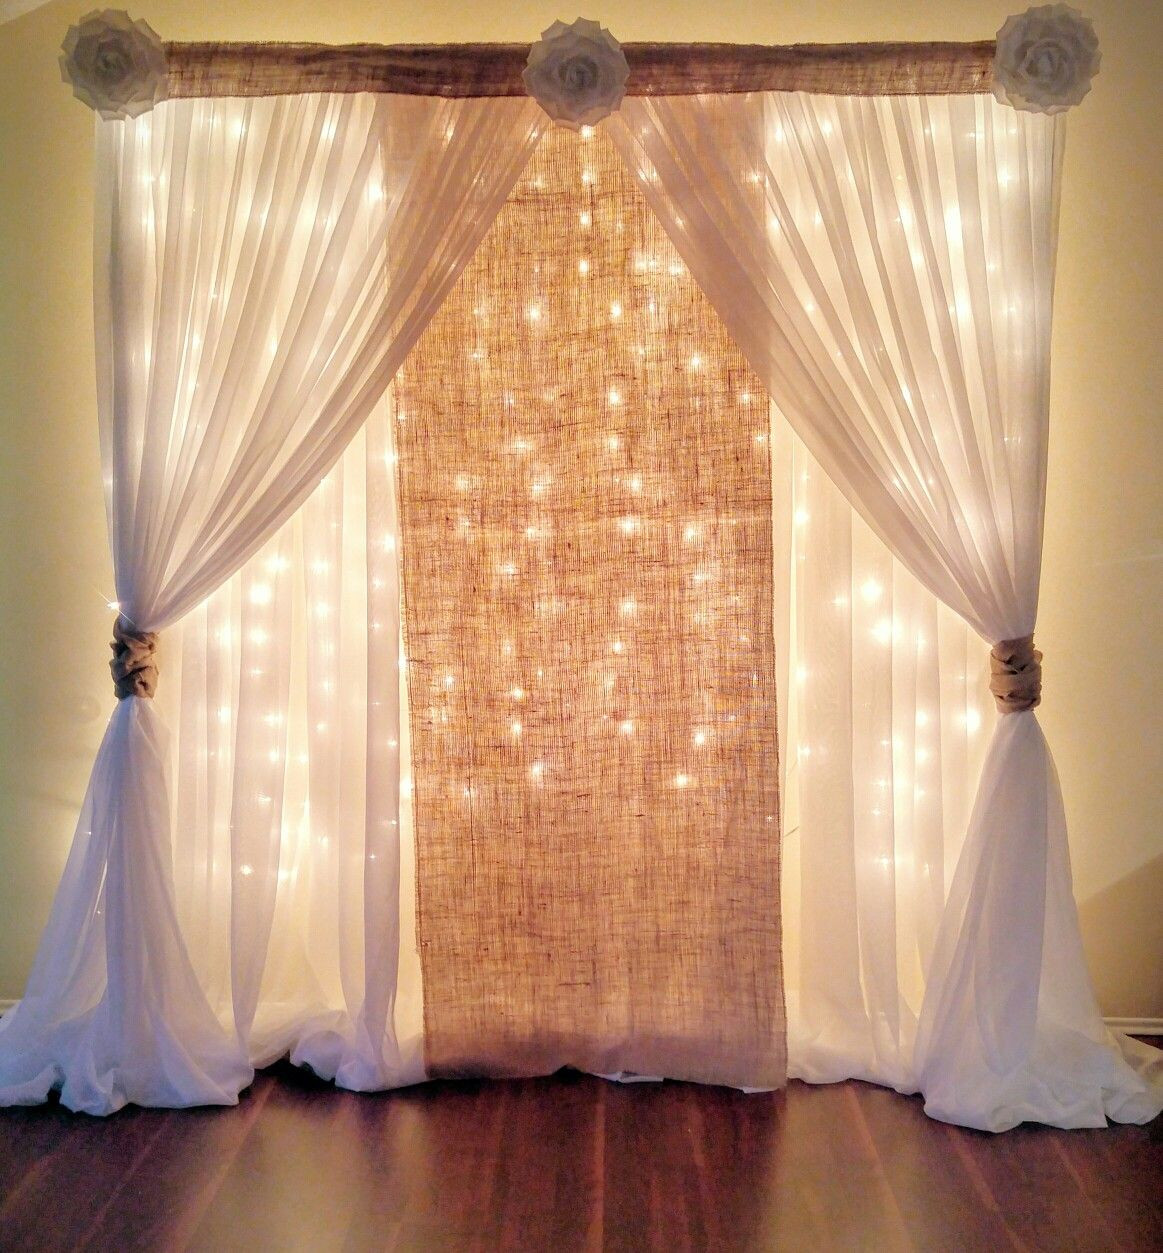 Best ideas about Wedding Drapes DIY . Save or Pin Breathtaking 44 Unique & Stunning Wedding Backdrop Ideas Now.